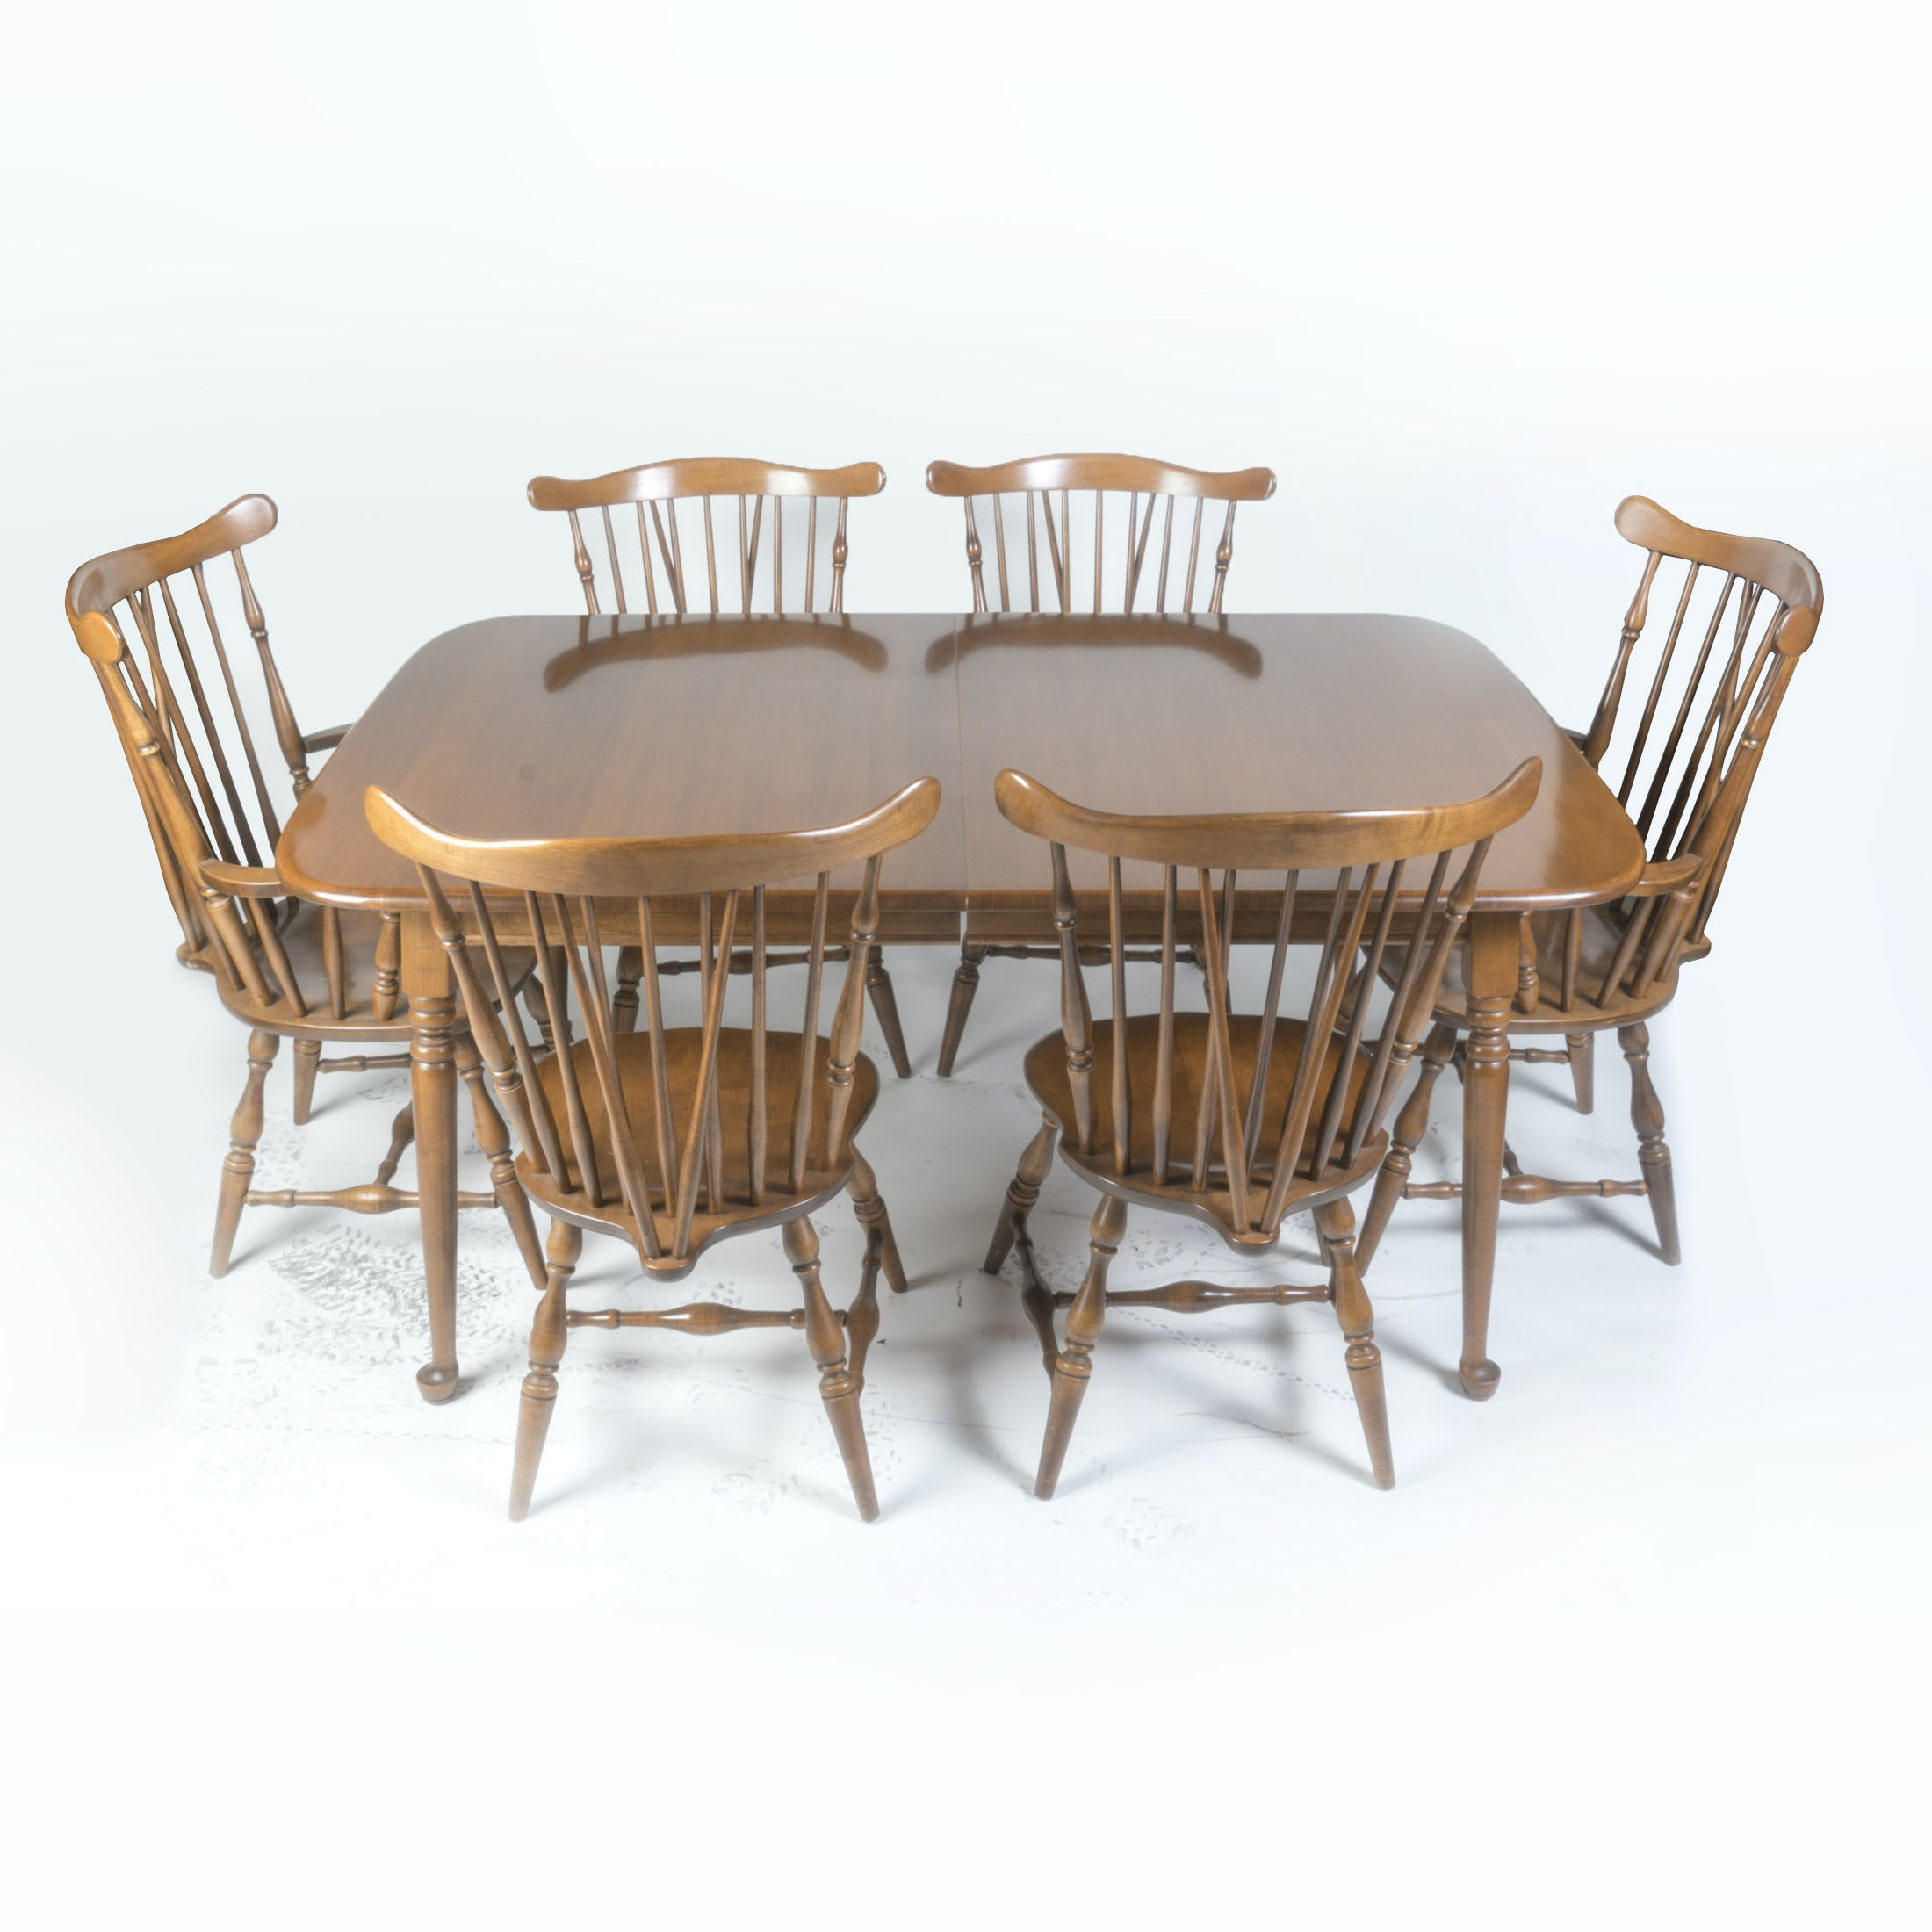 Early American Style Maple Table and Six Chairs by Heywood Wakefield